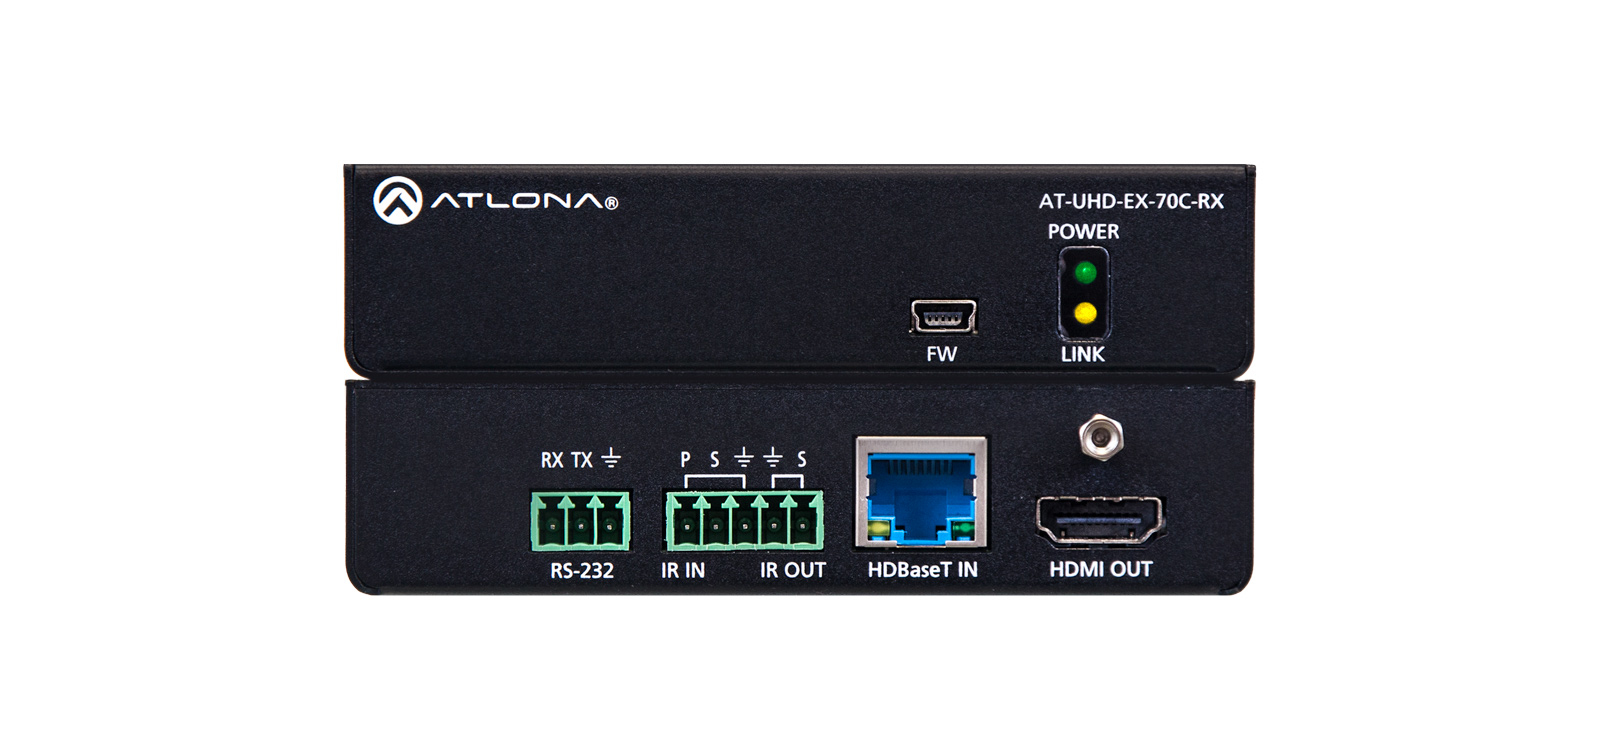 4k/uhd Hdmi Over Hdbaset Receiver With Control And Poe